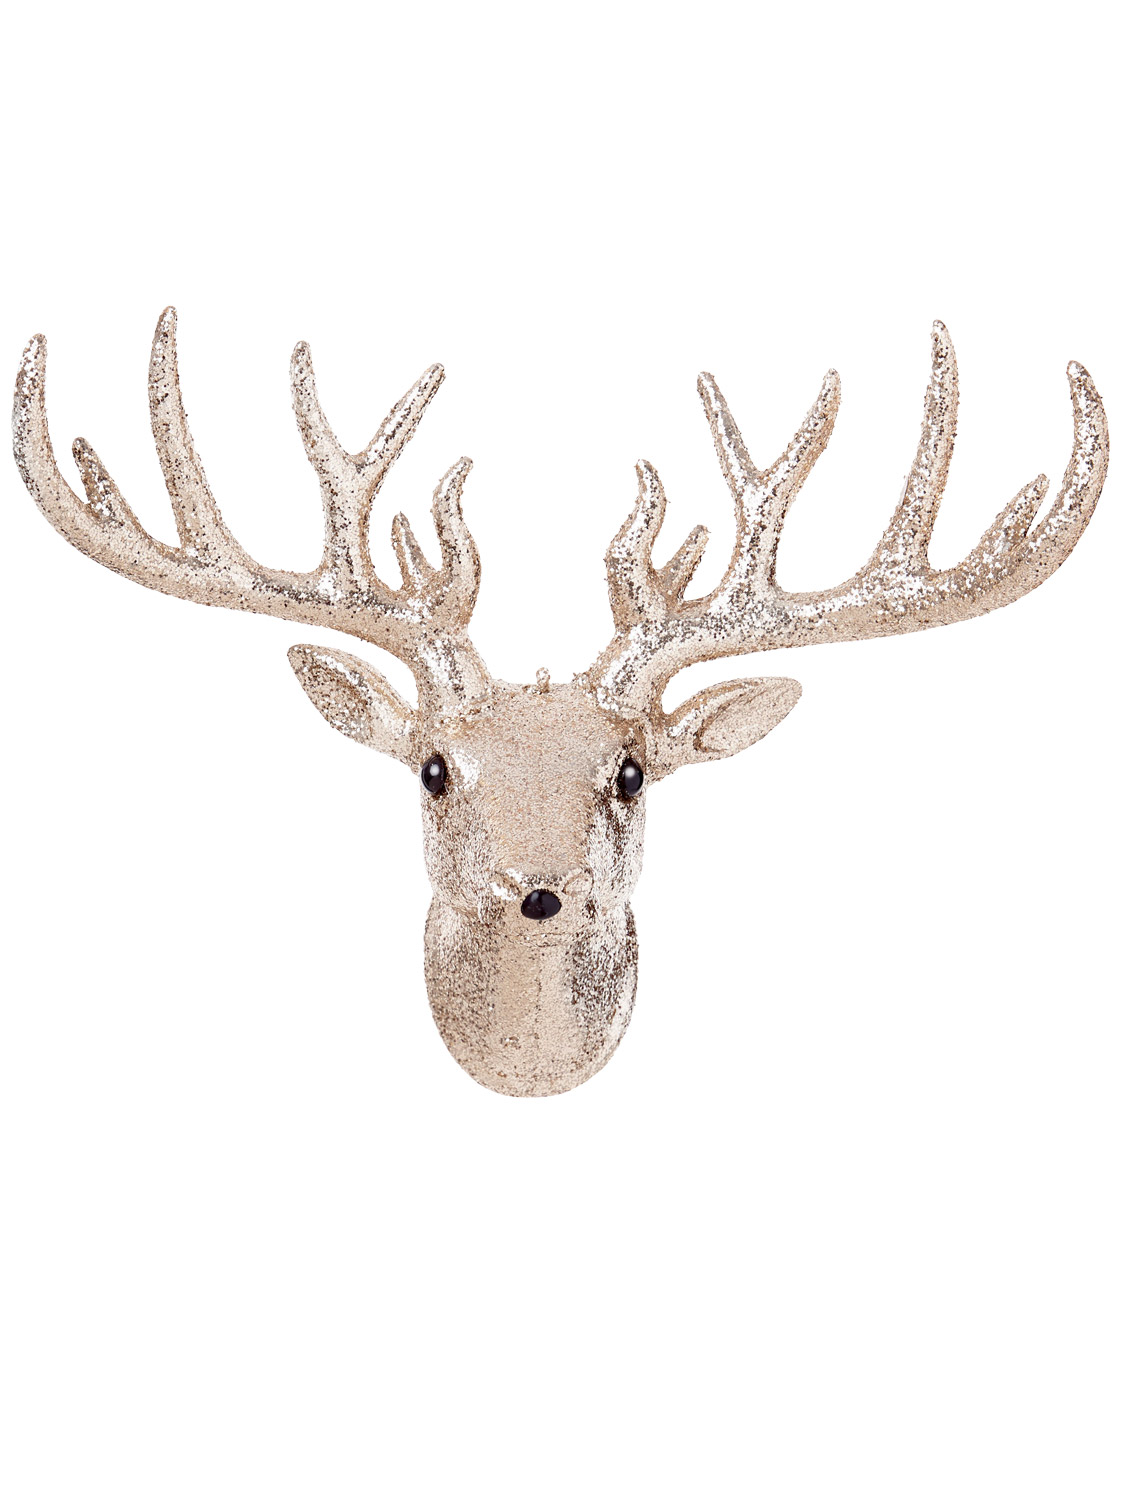 31x 23cm Glitter Stag Head Christmas Xmas Decoration Wall ...